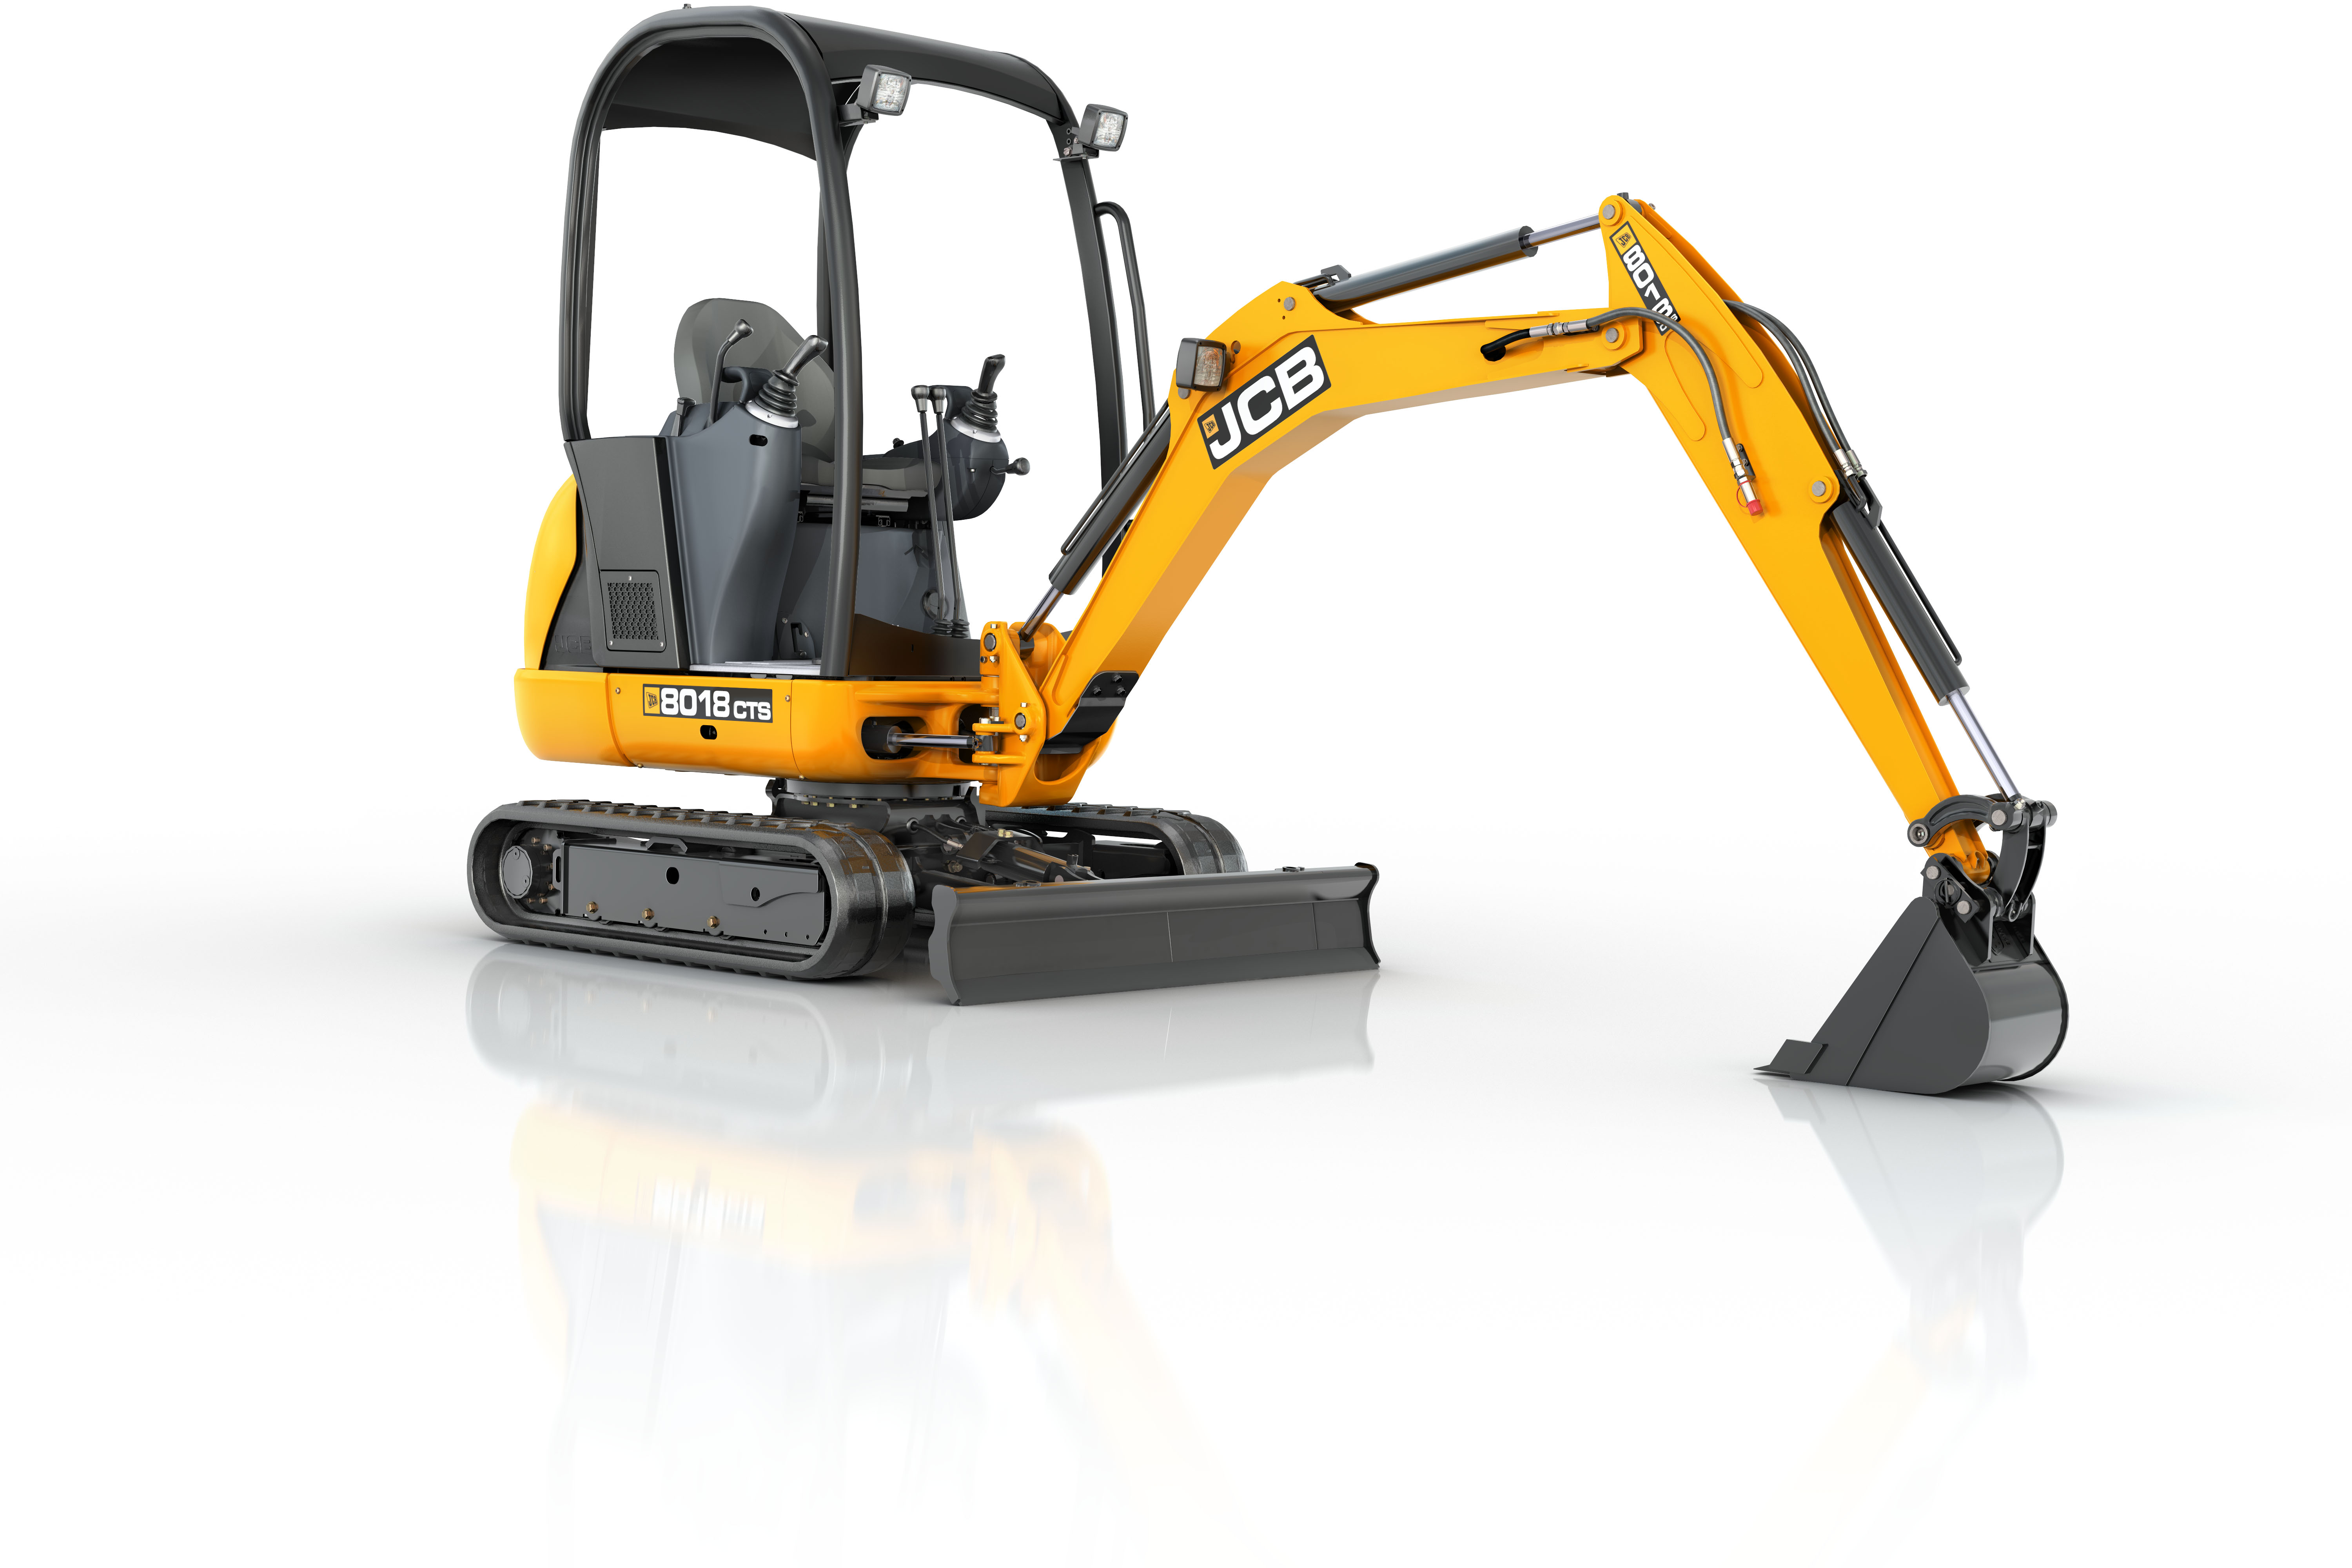 1.5T Mini Excavator with Expanding Tracks